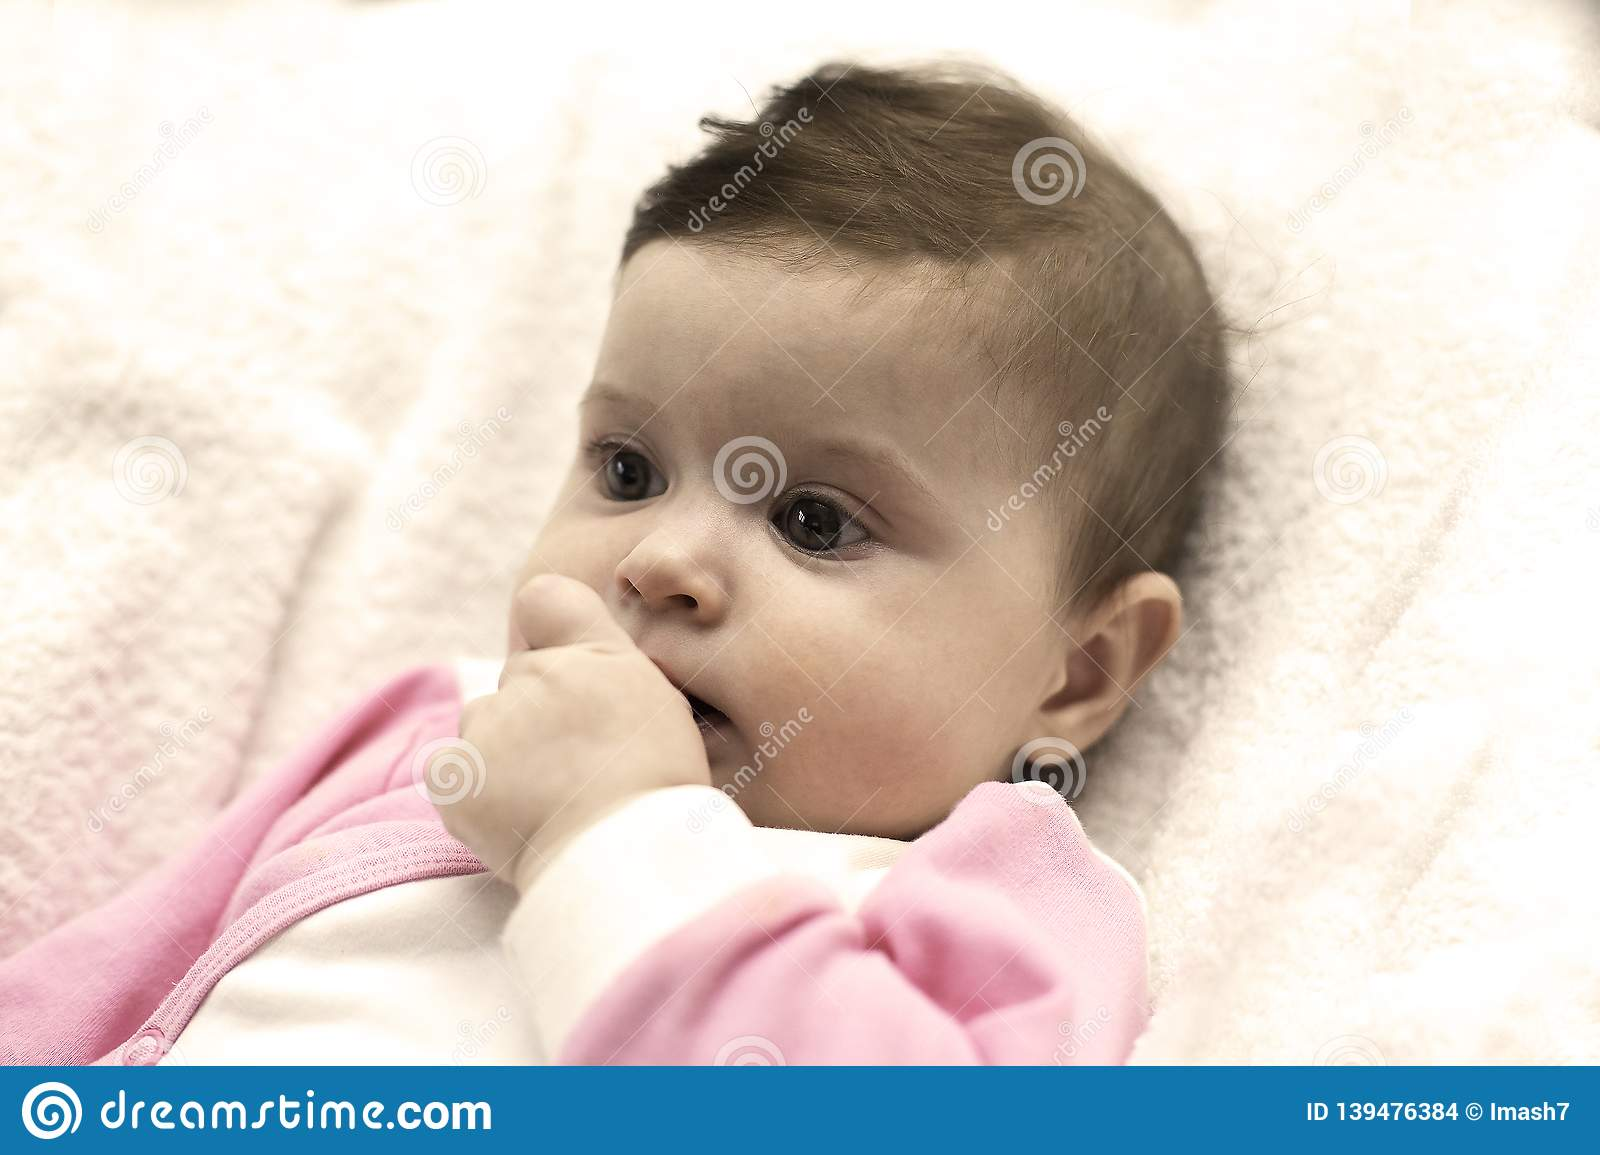 a23f246beeea Cute Girl Biting Her Finger Stock Images - Download 175 Royalty Free Photos